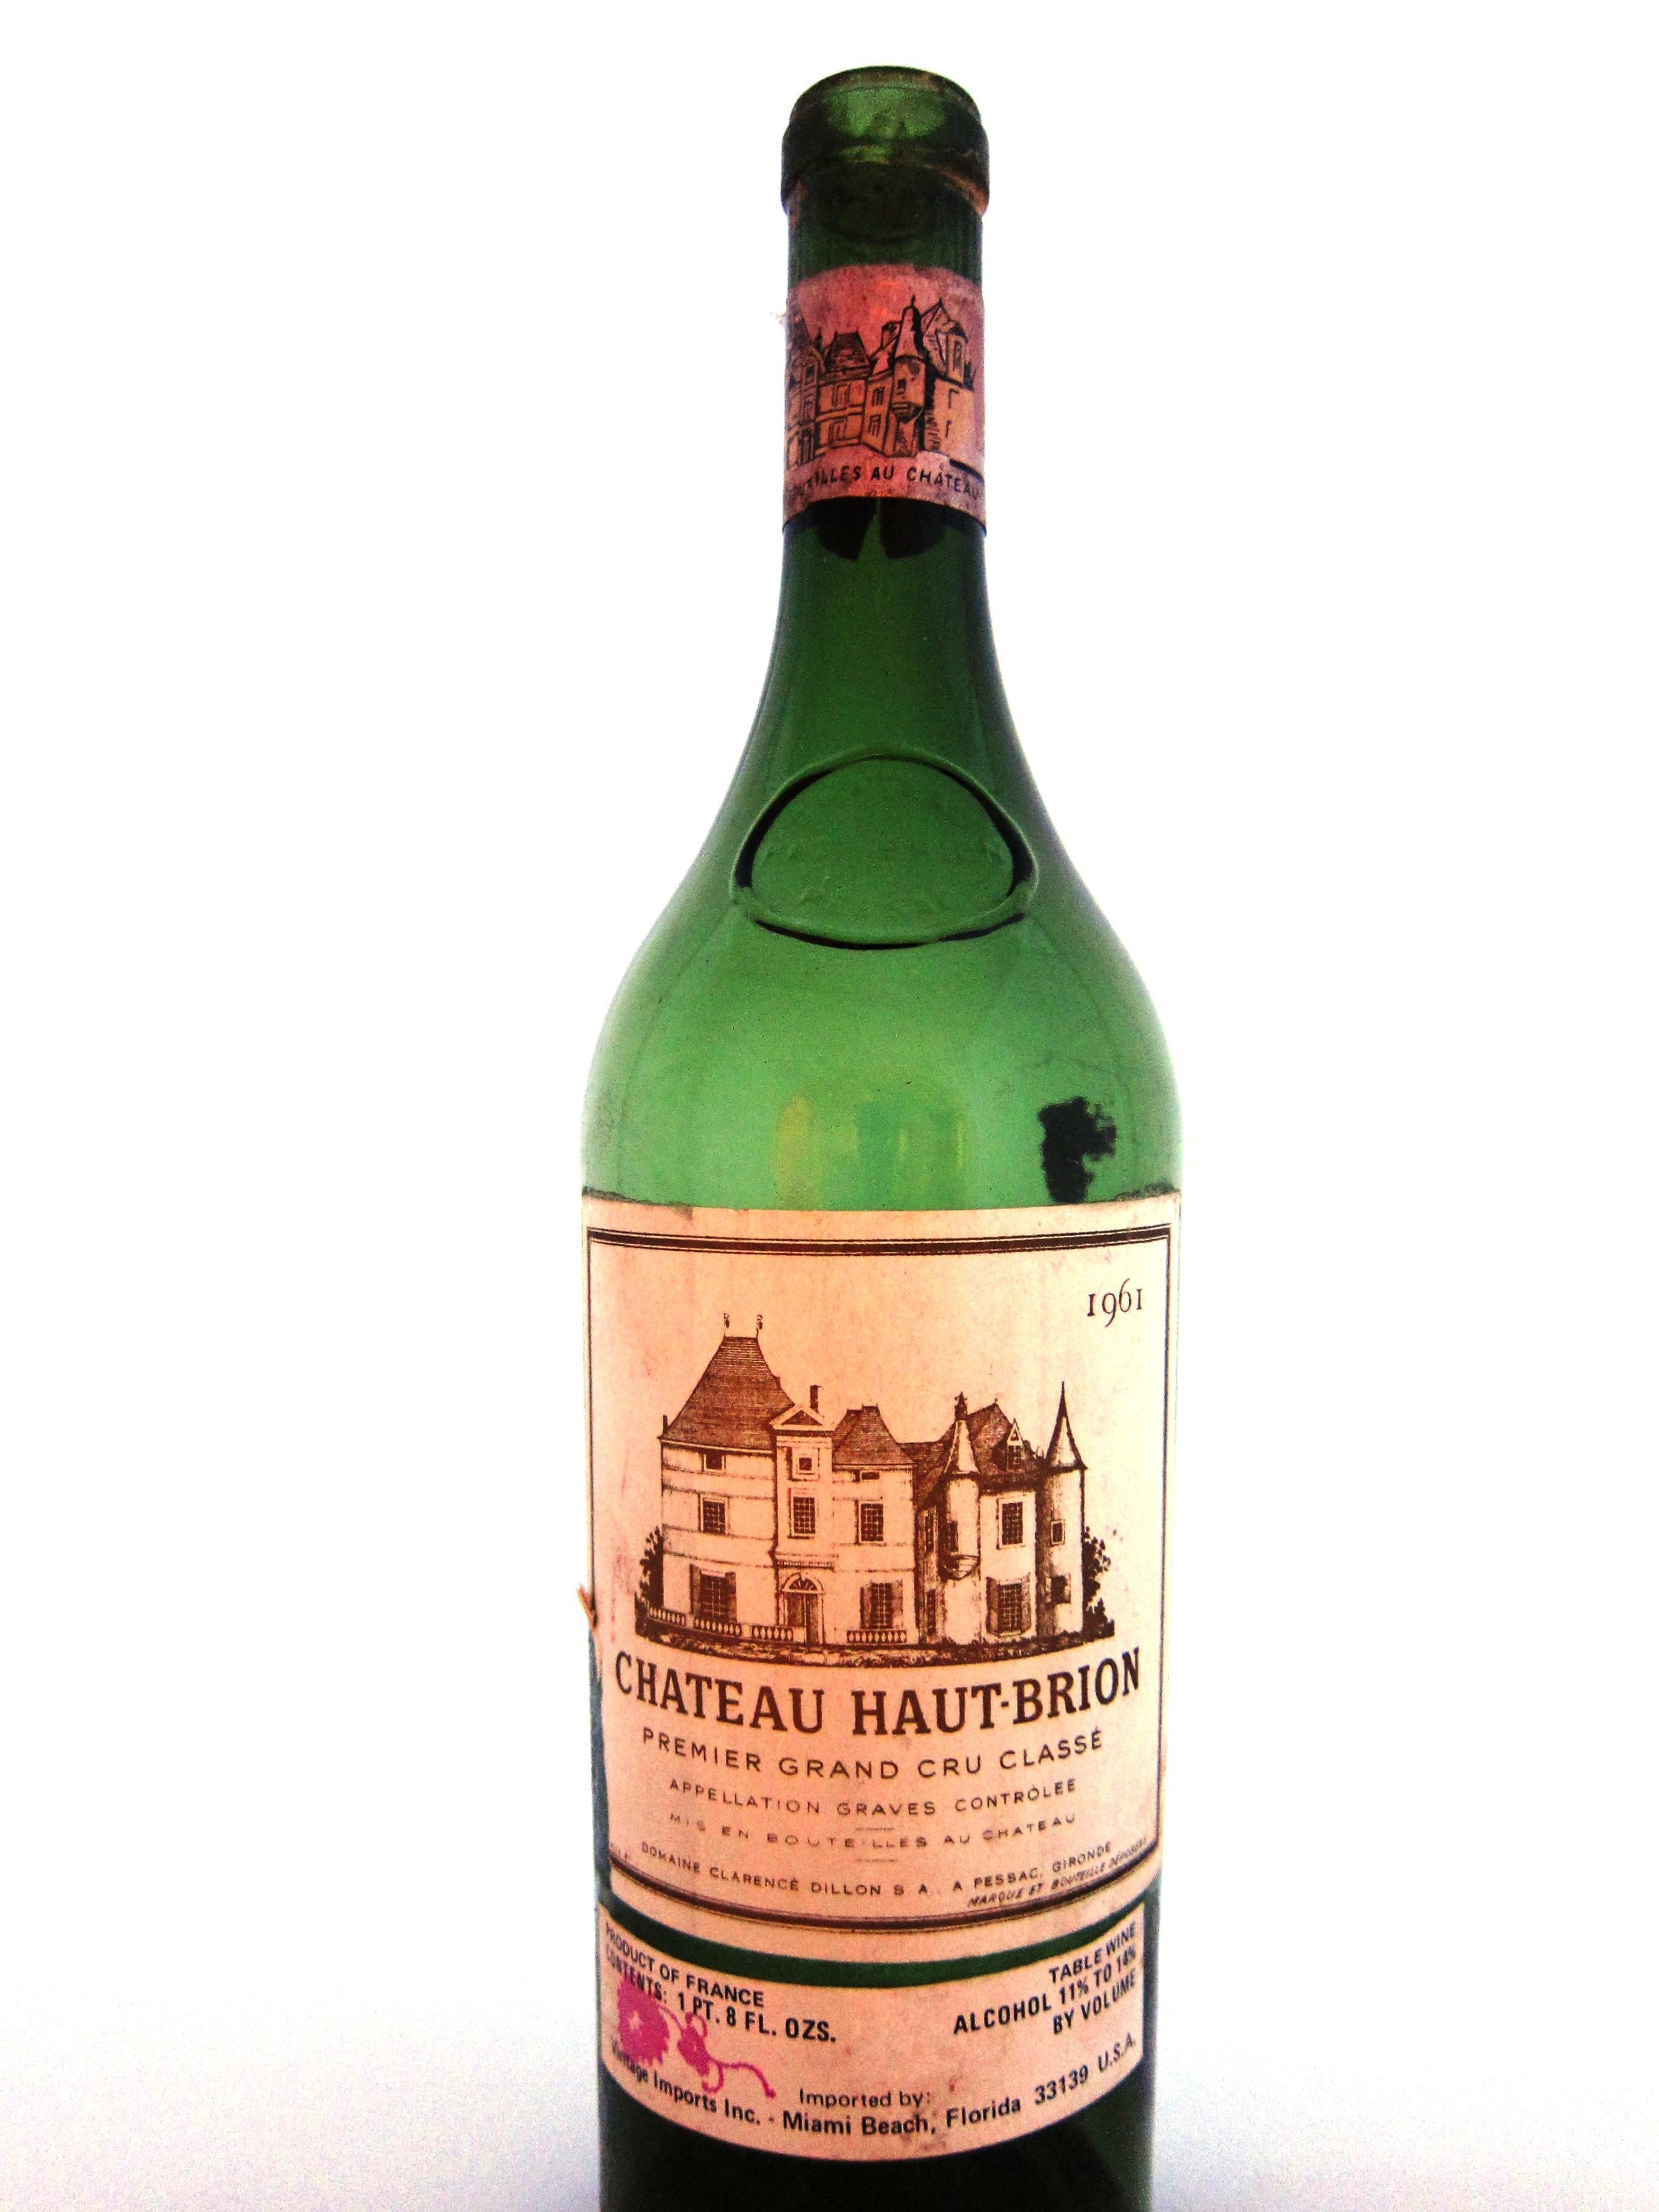 Chateu Haut Brion 1961 scores 100 Pts